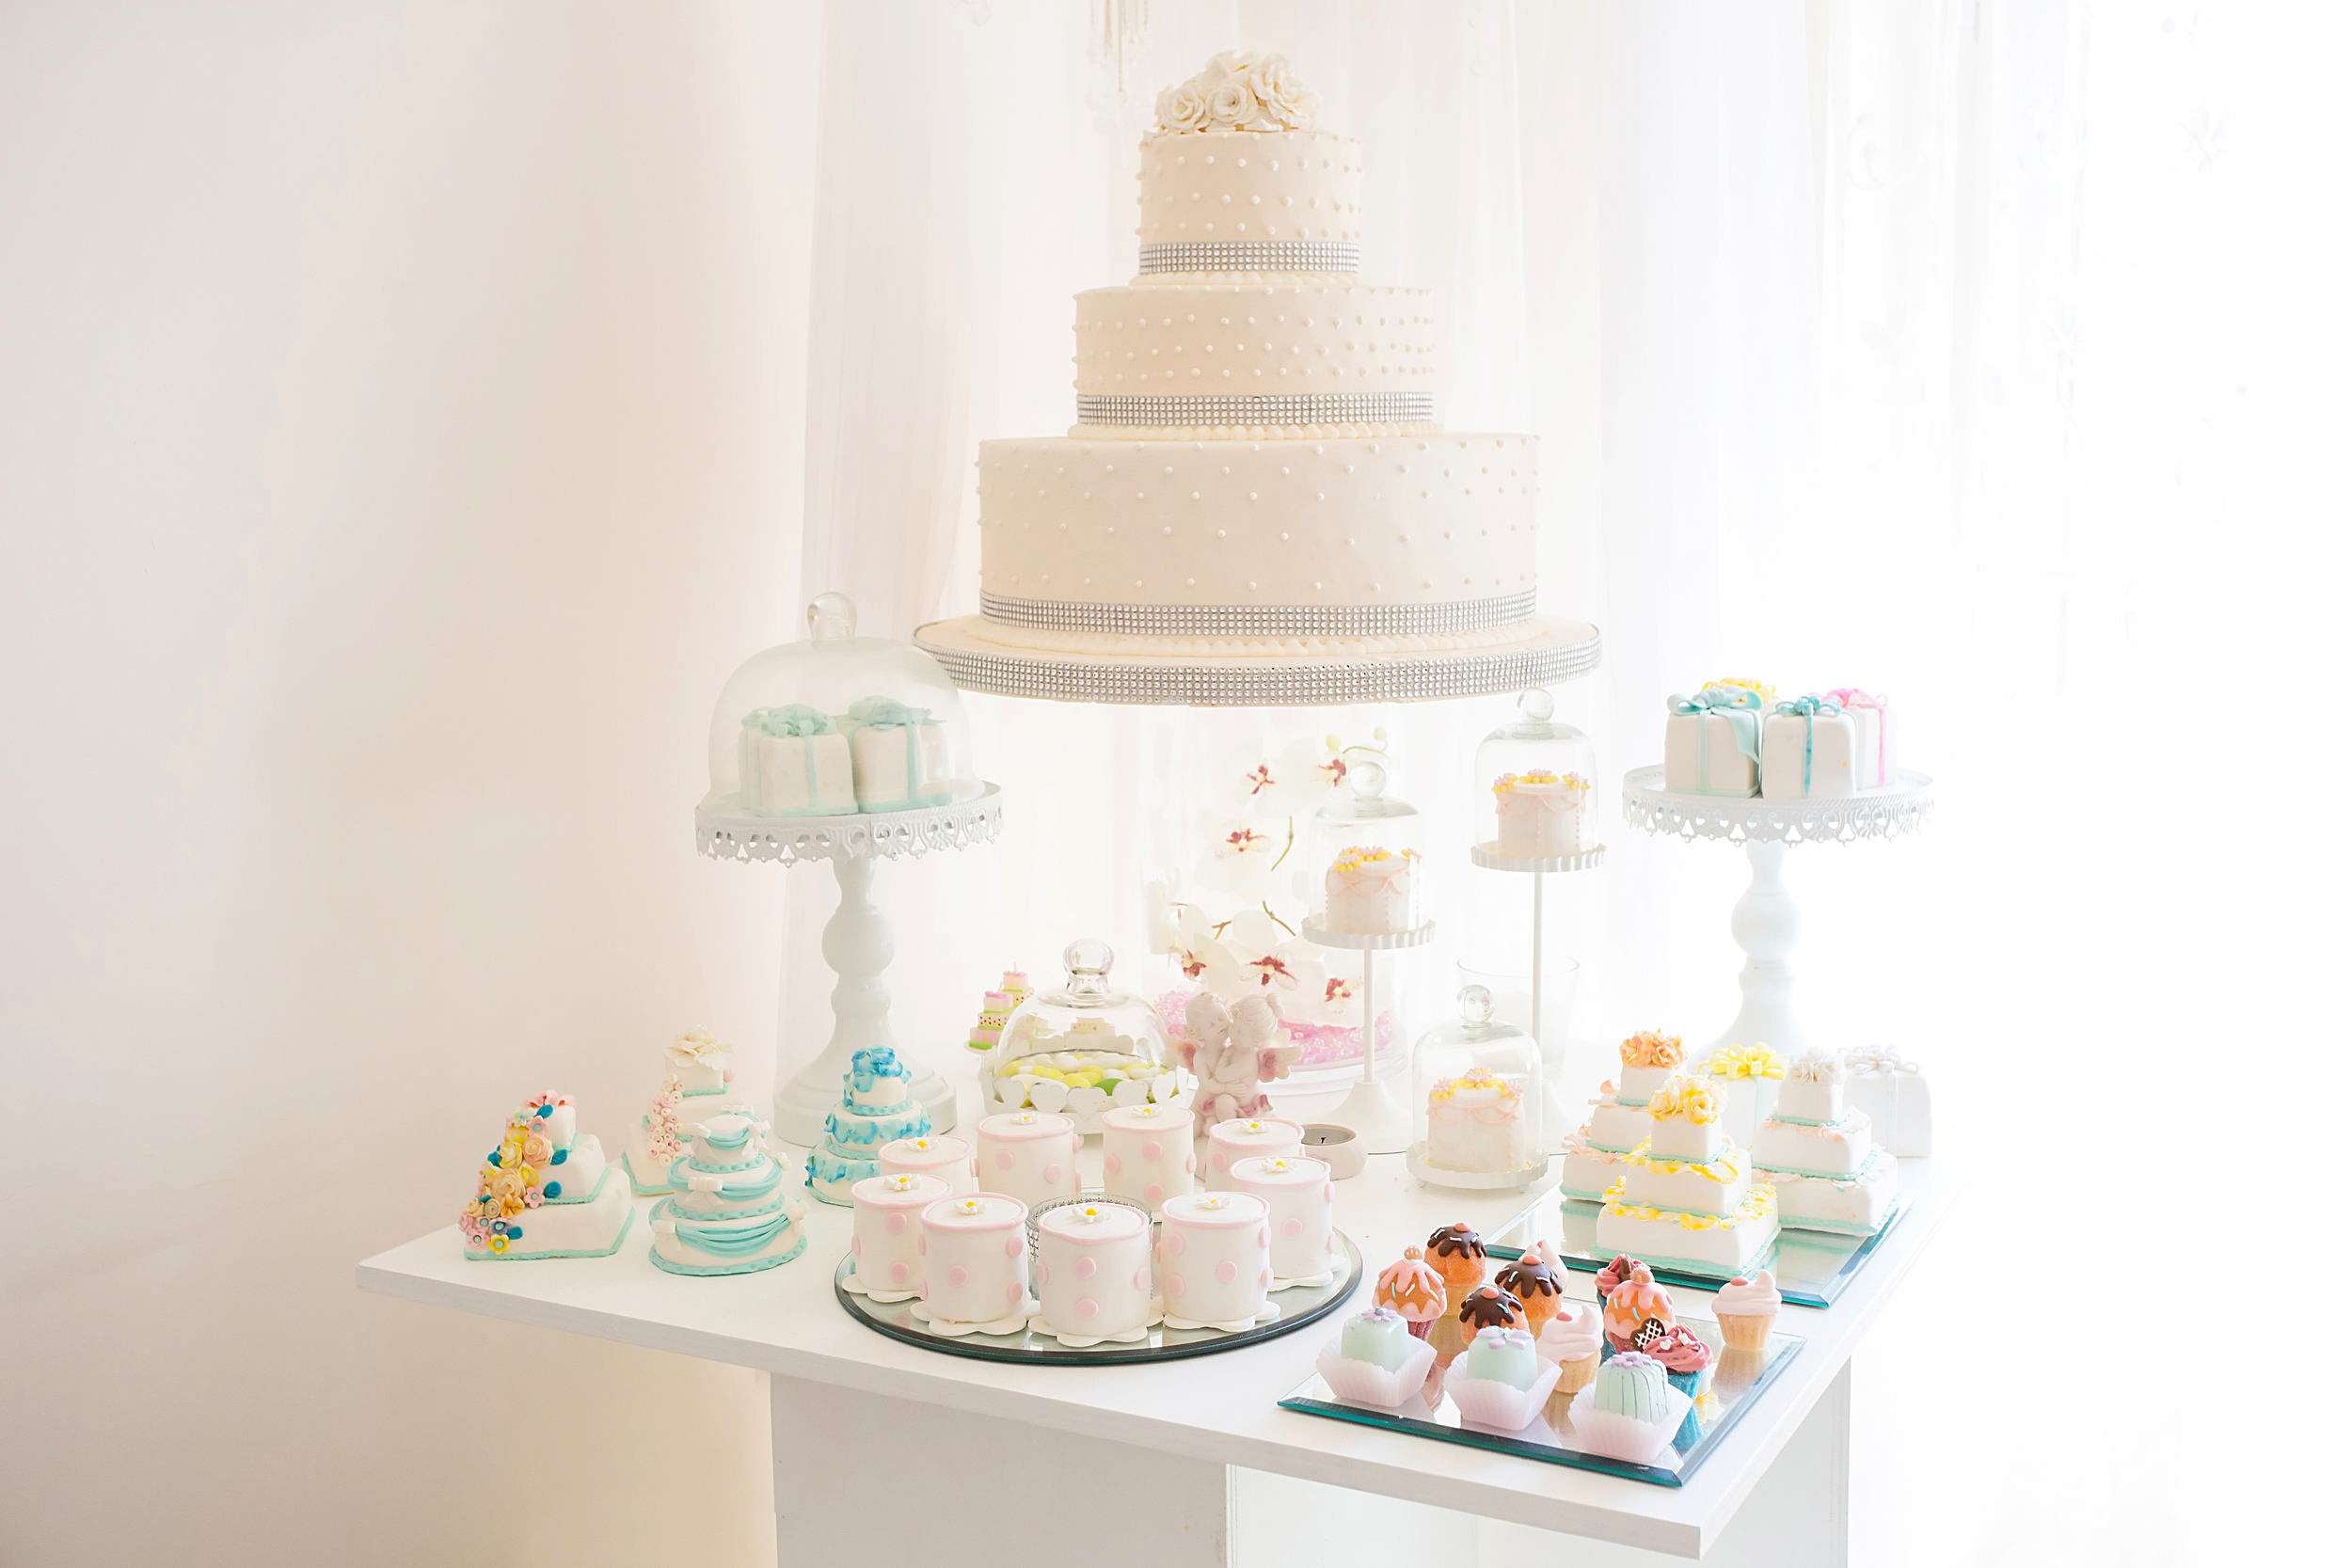 Events Beyond Event Planning   NYC Candy Bar   Sweets and Treats Display   Candy Bar   Dessert Tables   Candy Buffet   Cake   Dessert   Candy  Wedding Favors   Courtney Kern